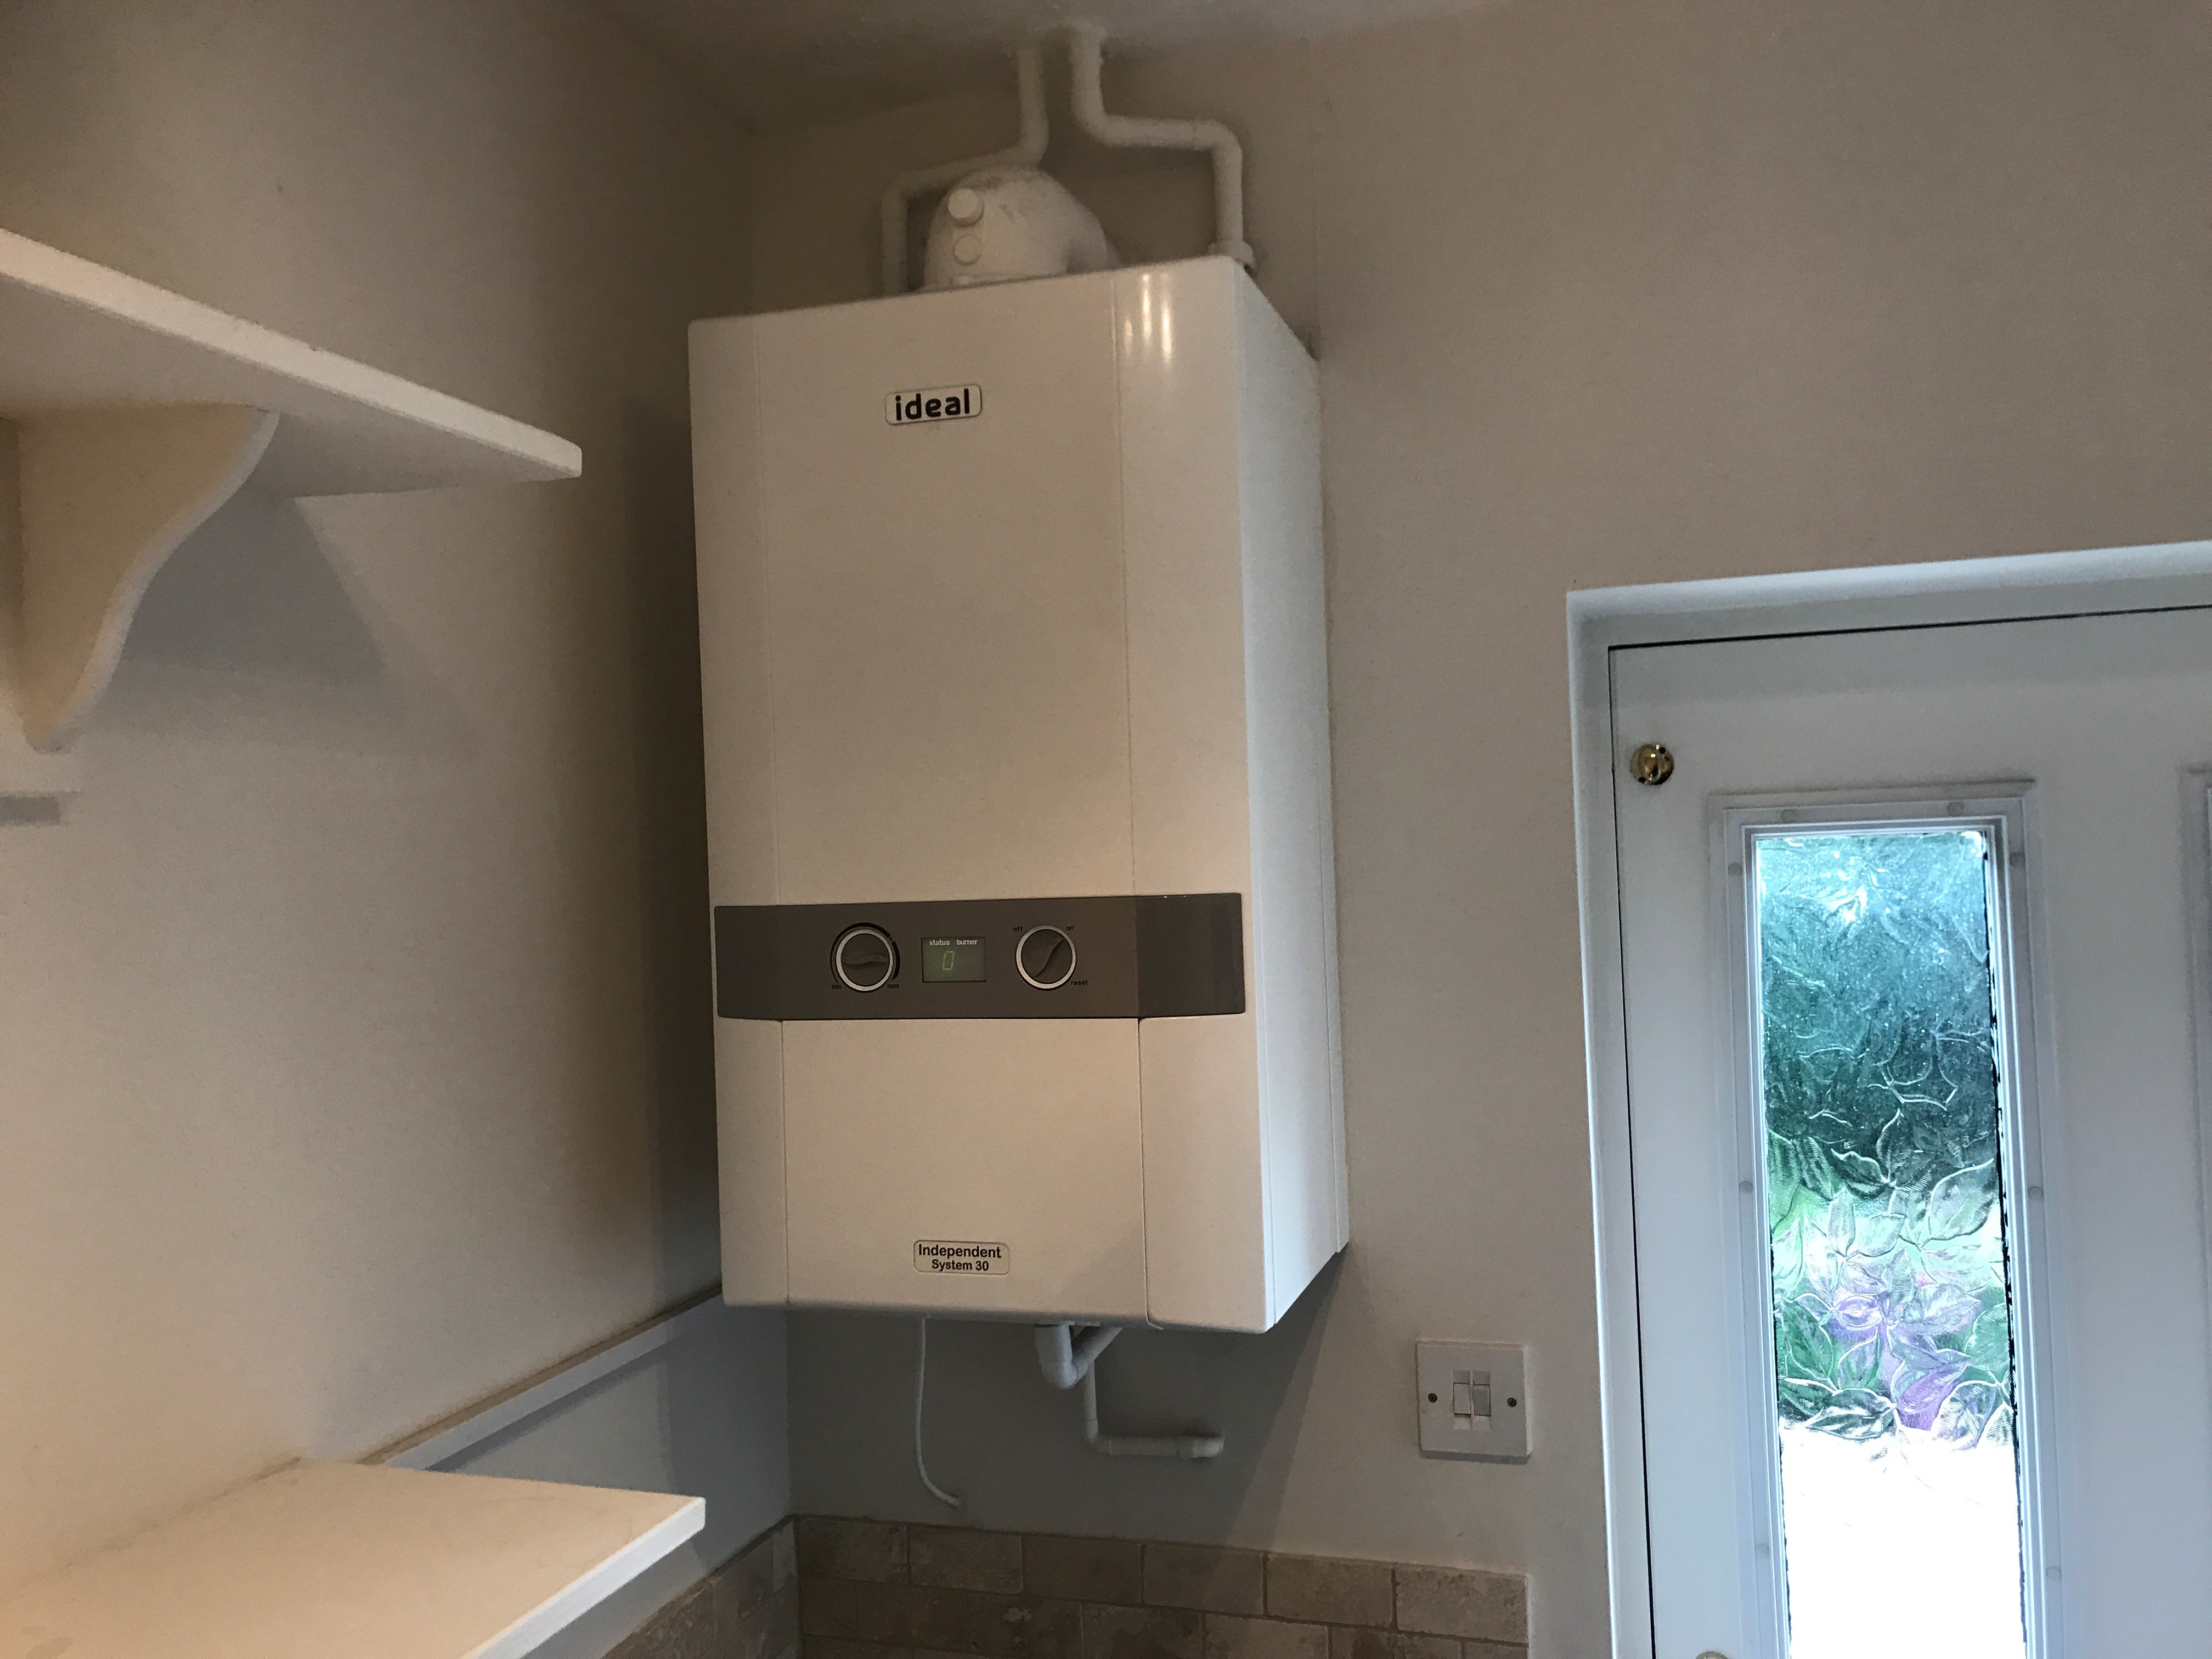 New system boiler fitted Milnsbridge in Huddersfield